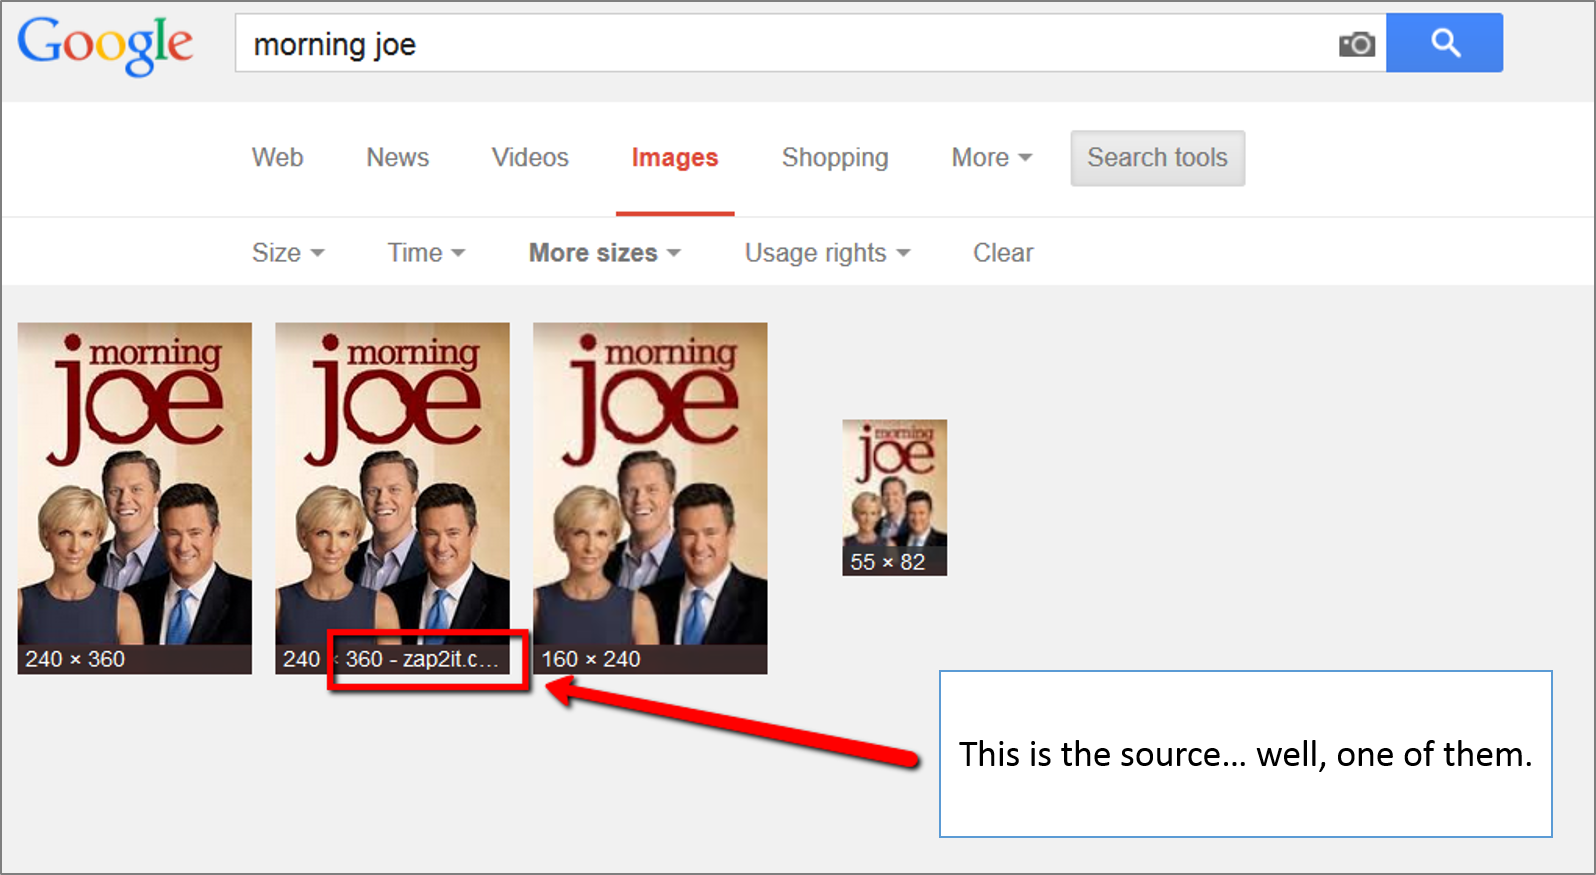 Morning_Joe_image_search.png